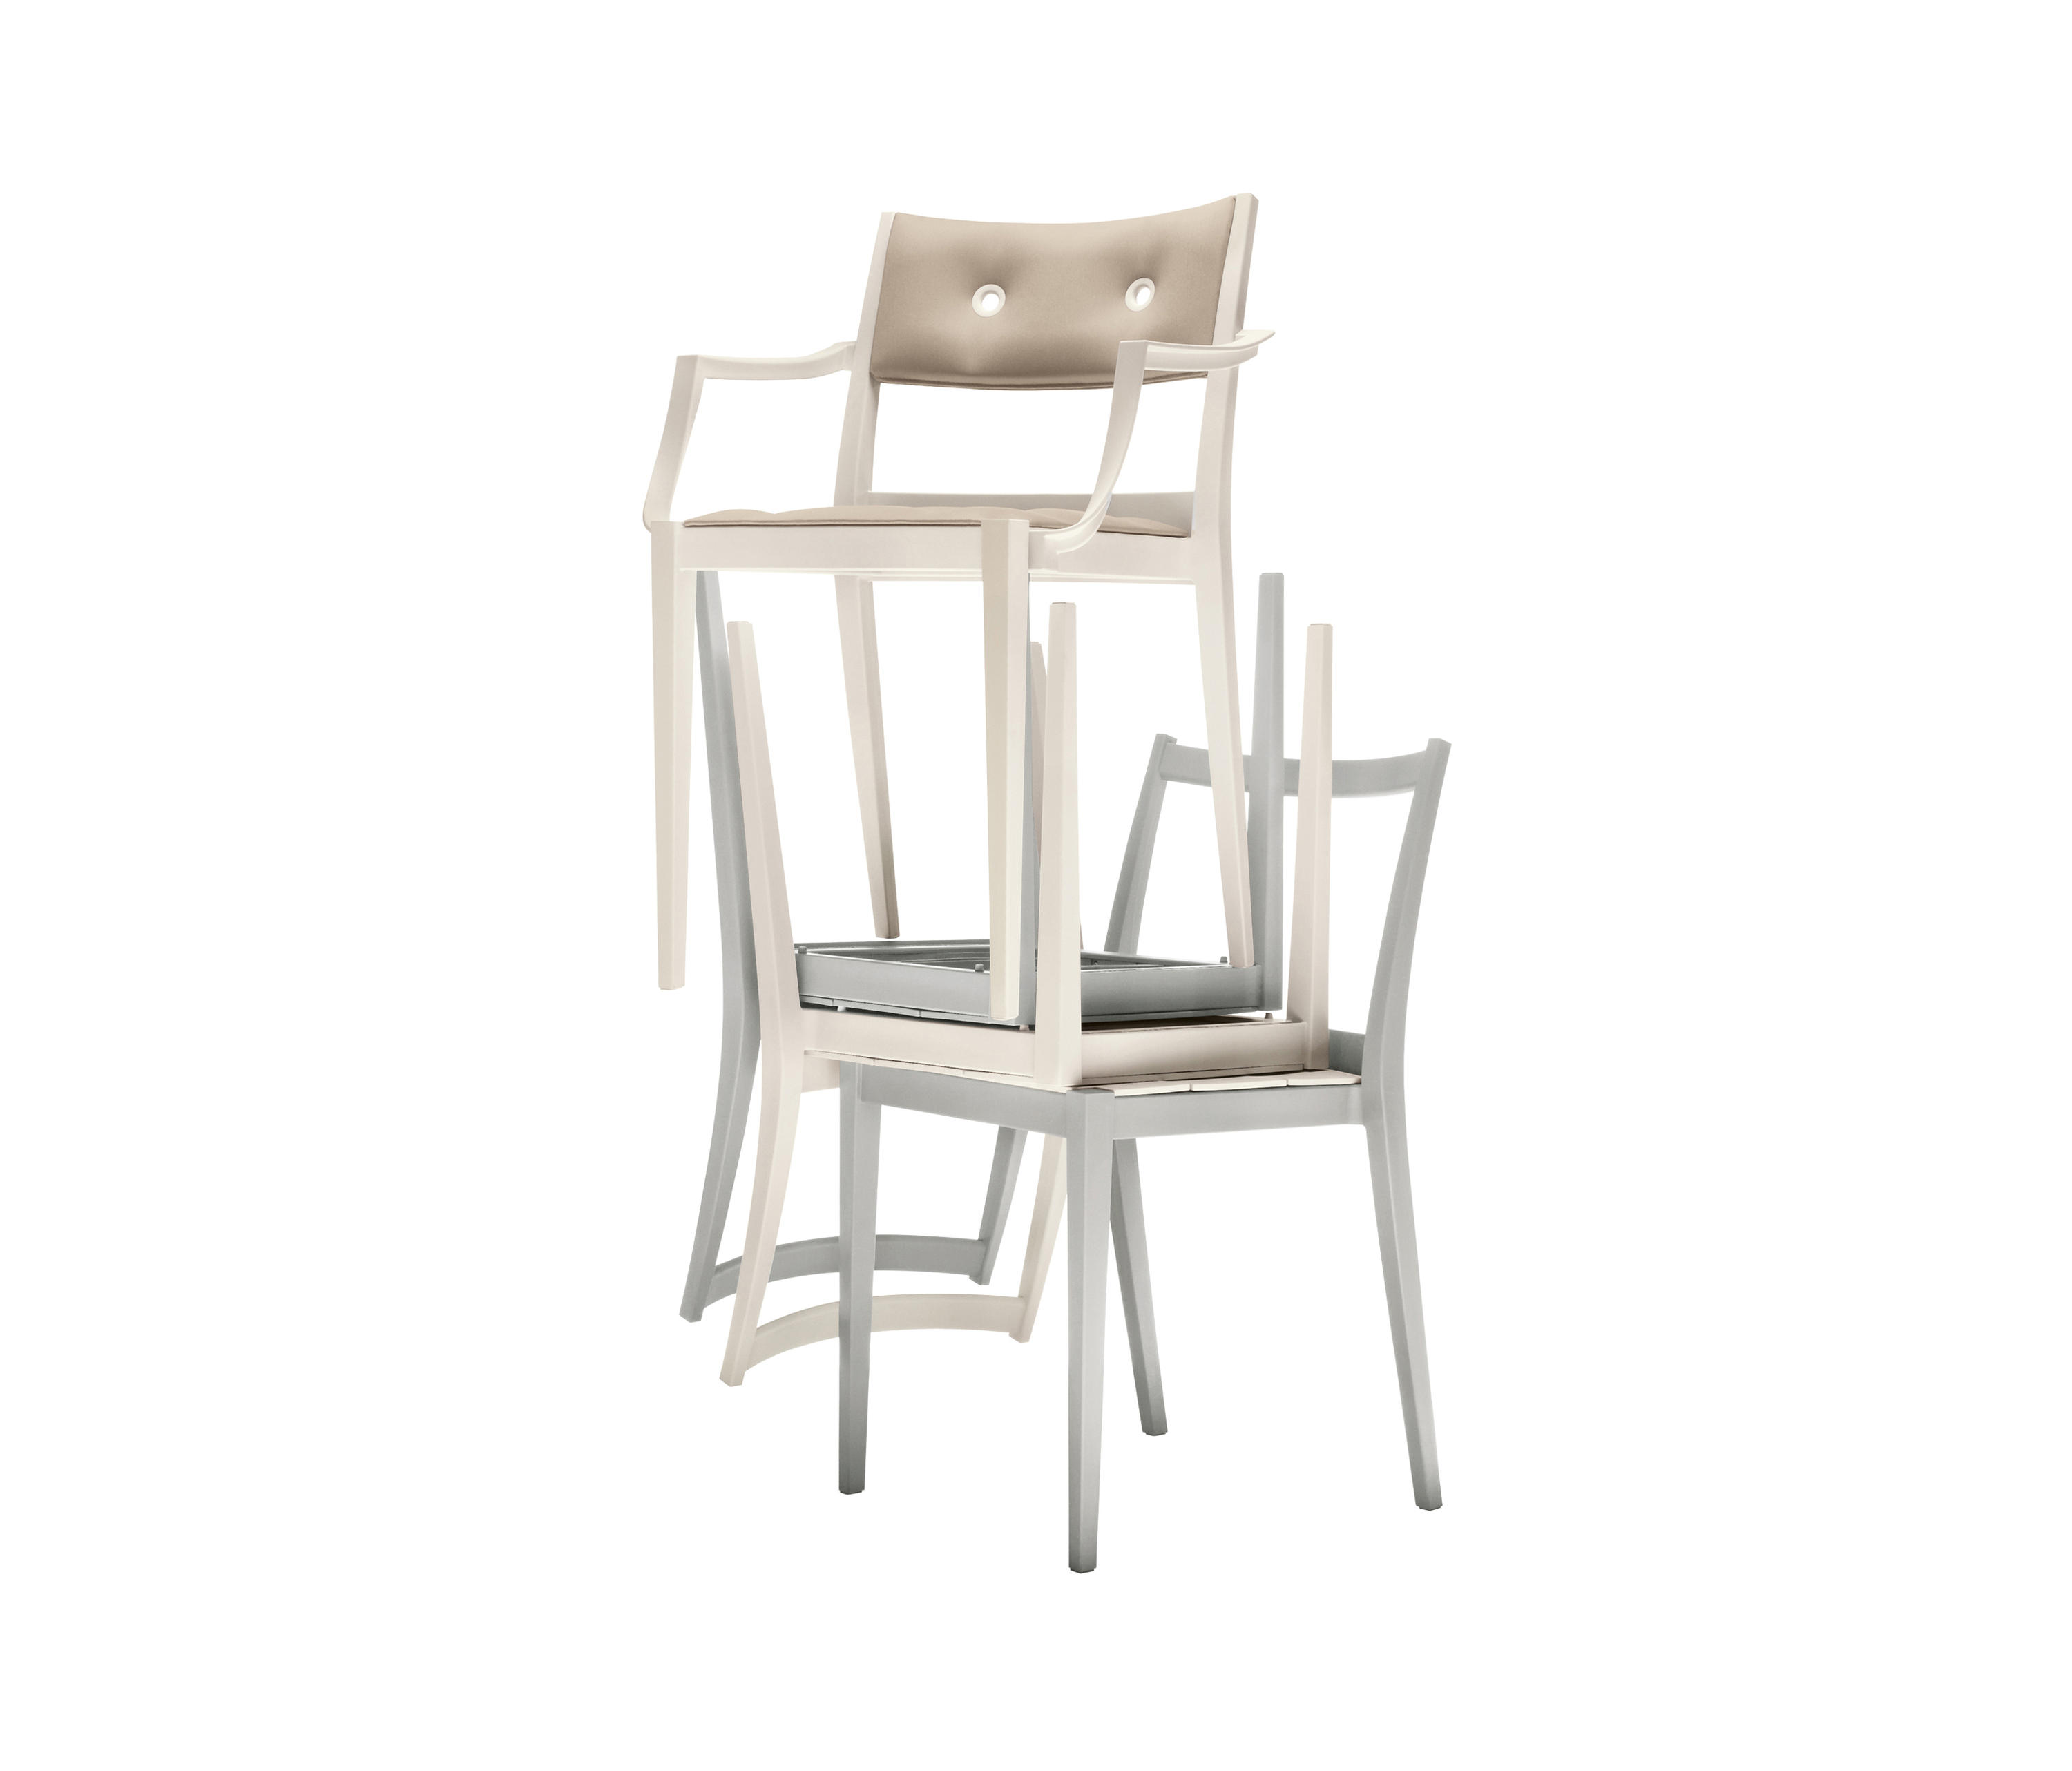 play light multipurpose chairs from dedon architonic. Black Bedroom Furniture Sets. Home Design Ideas